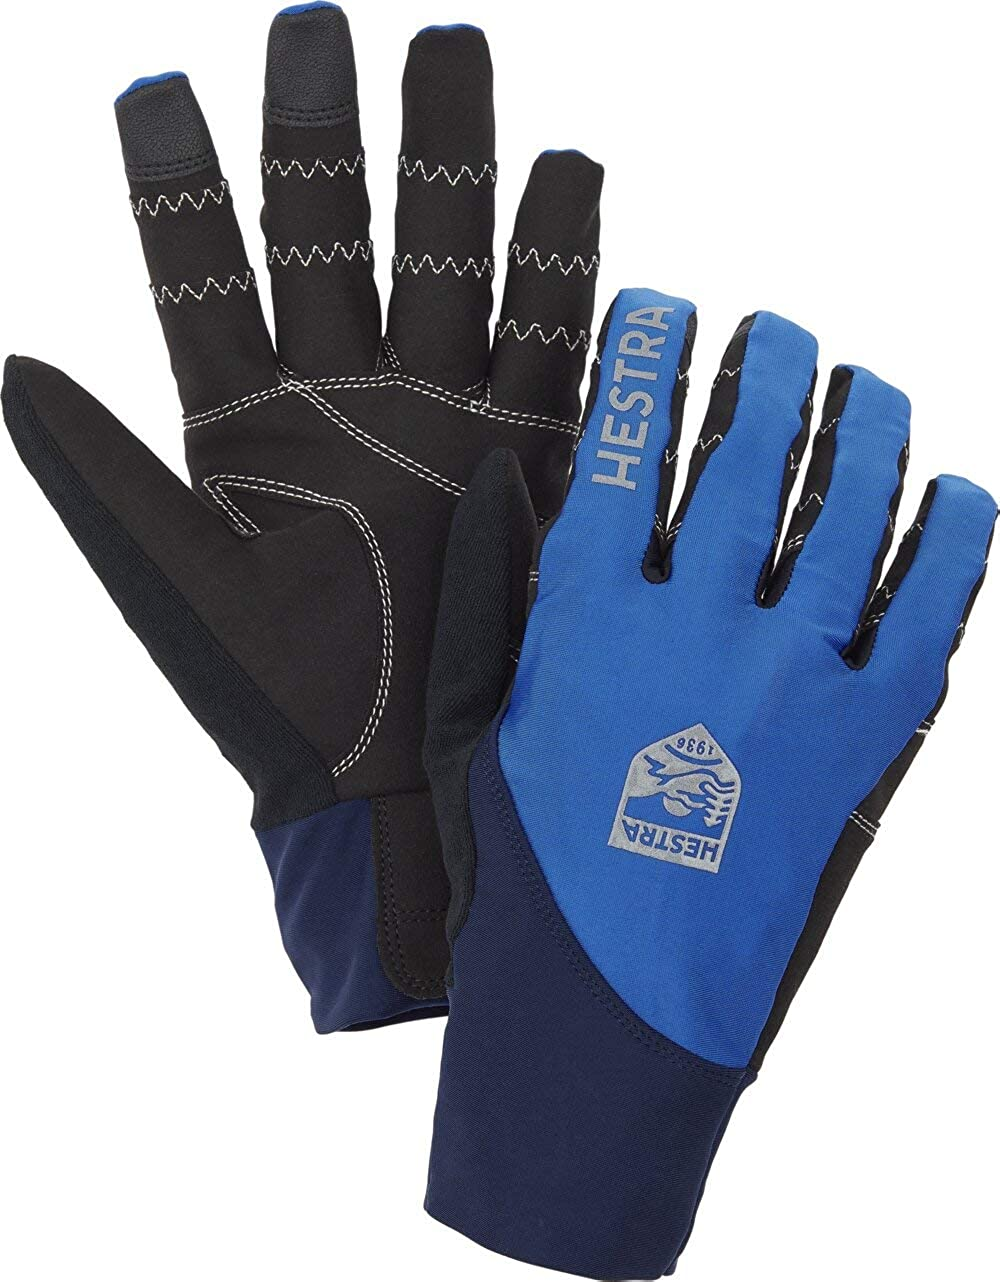 shipfree Hestra Ergo Grip Race Cut Full B Finger OFFicial mail order Protective Non-Insulated